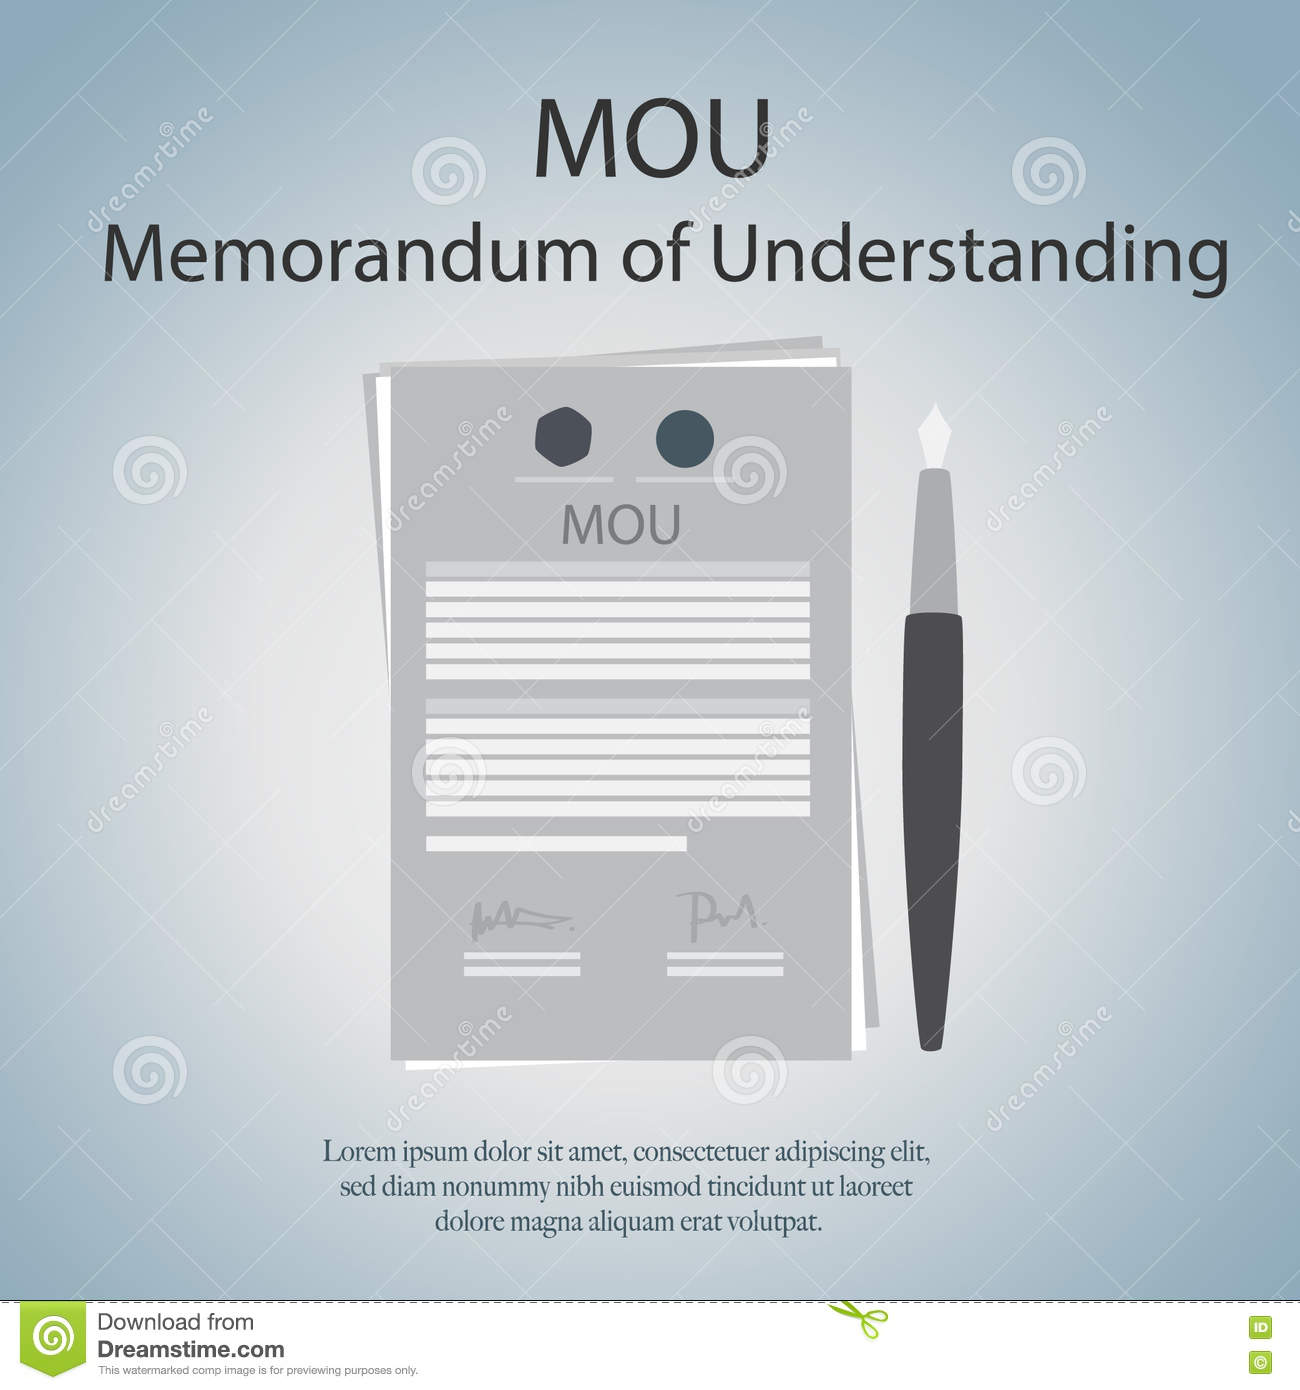 is an mou a legal document